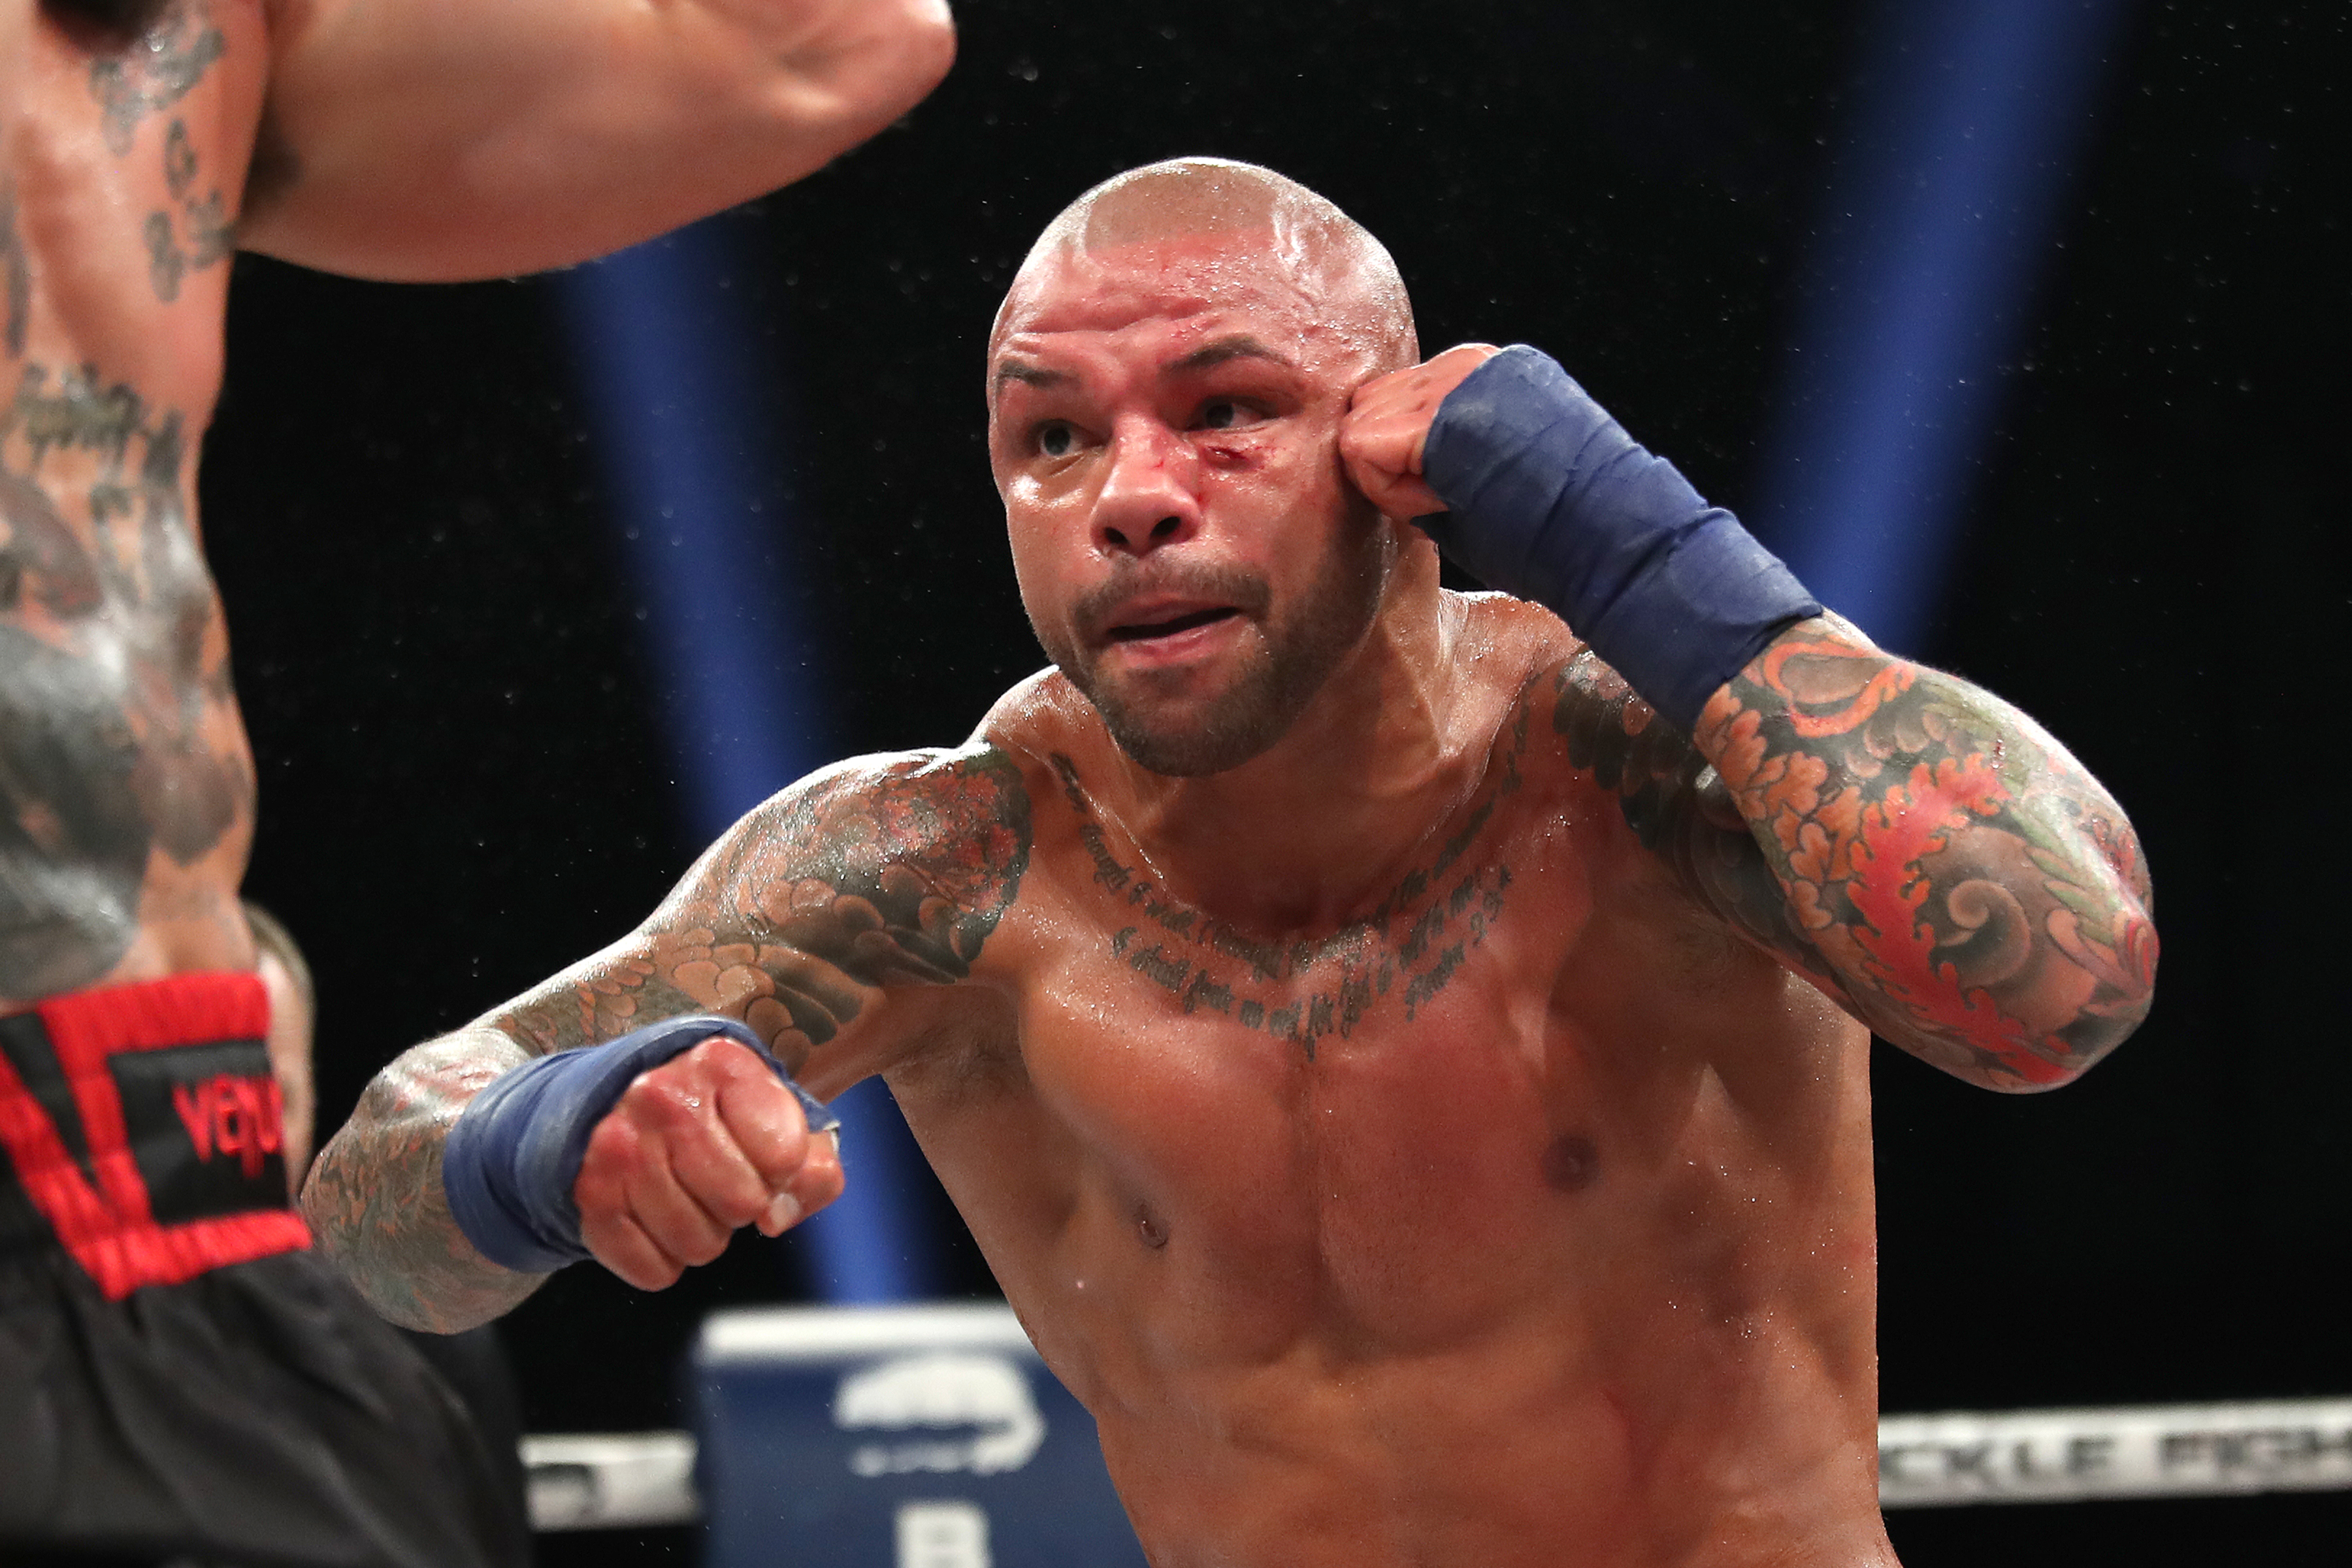 Thiago Alves whilst fighting Julian Lane at a BKFC event in September 2020